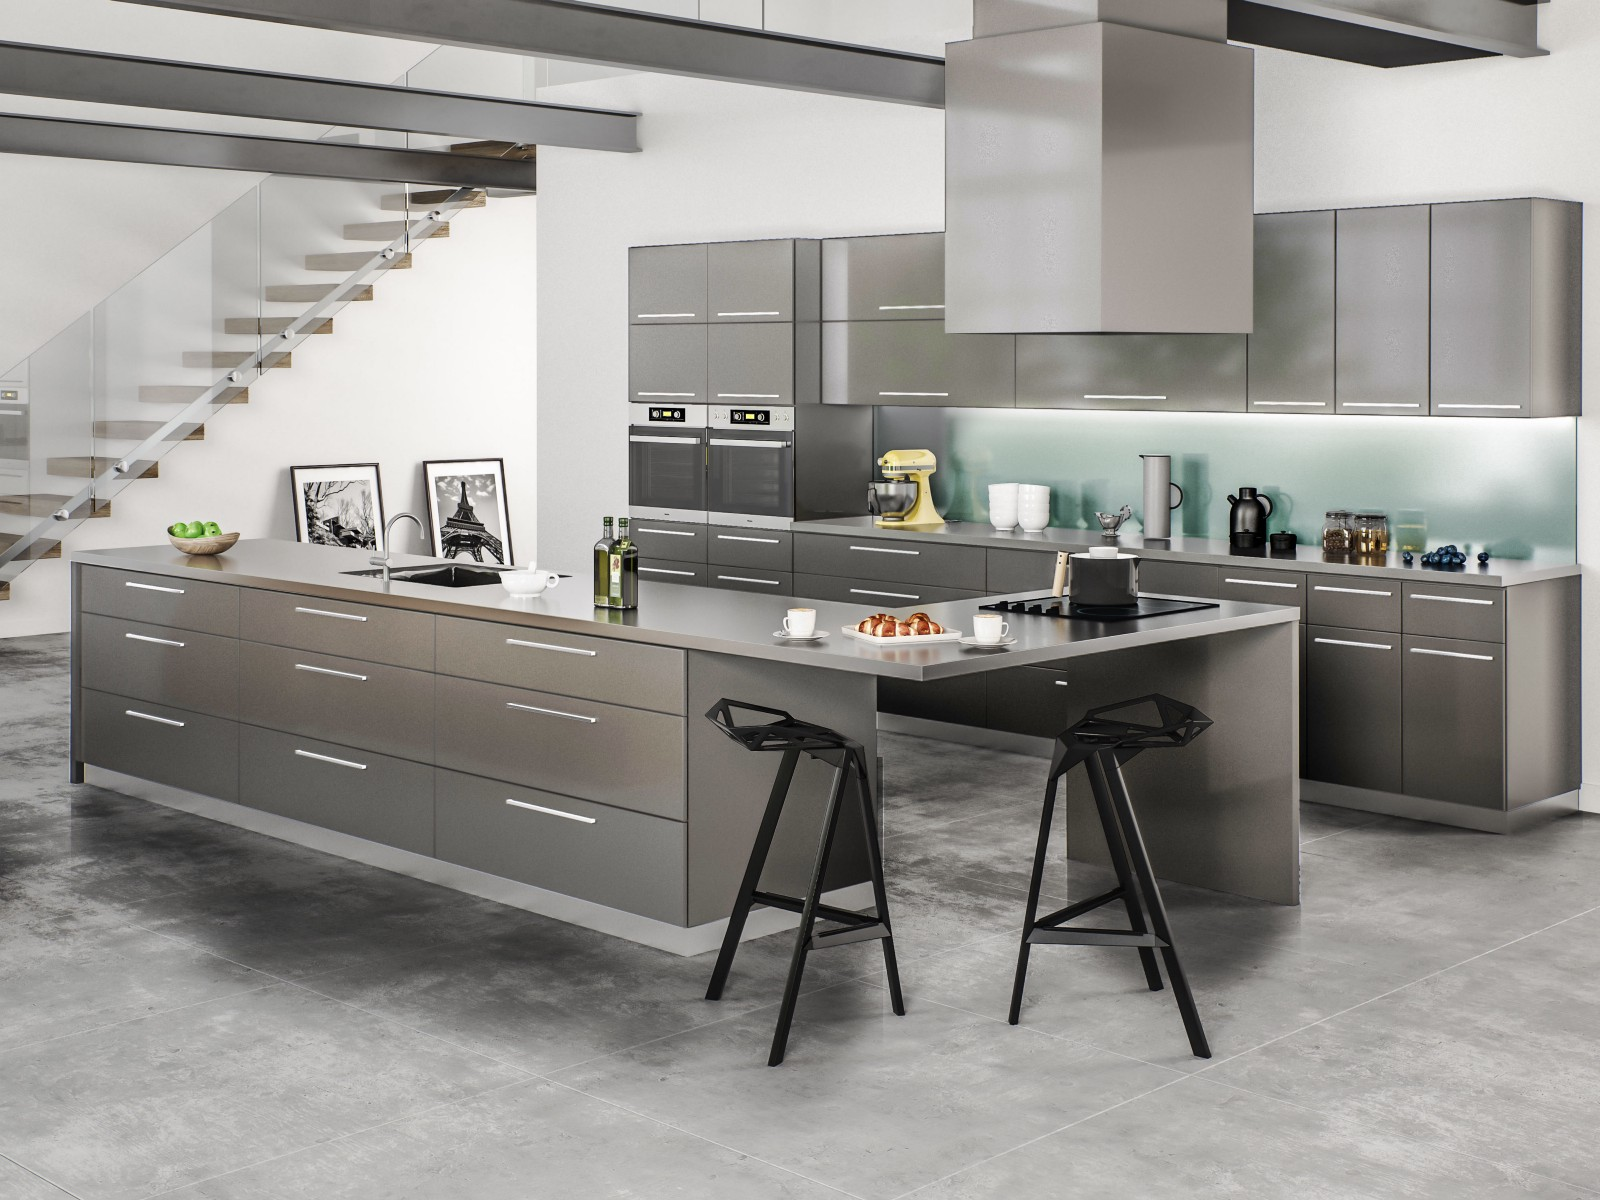 EdenHall Kitchens Giving Life To Modern Kitchen Design Ideas Expertly